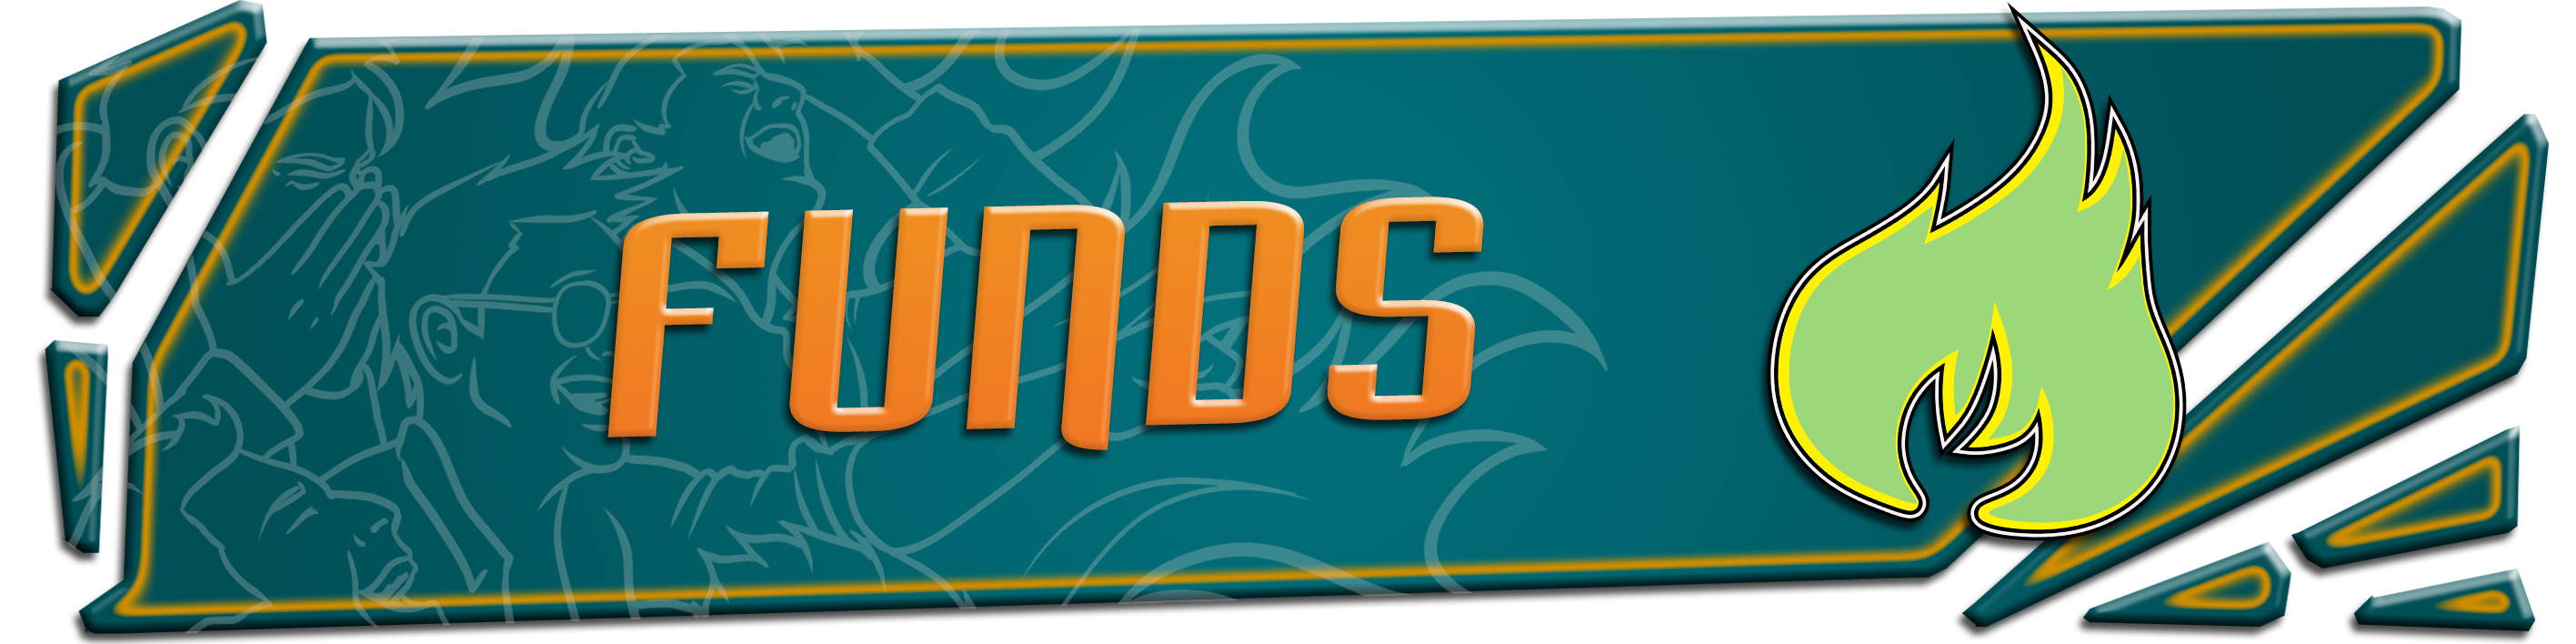 Funds Banner